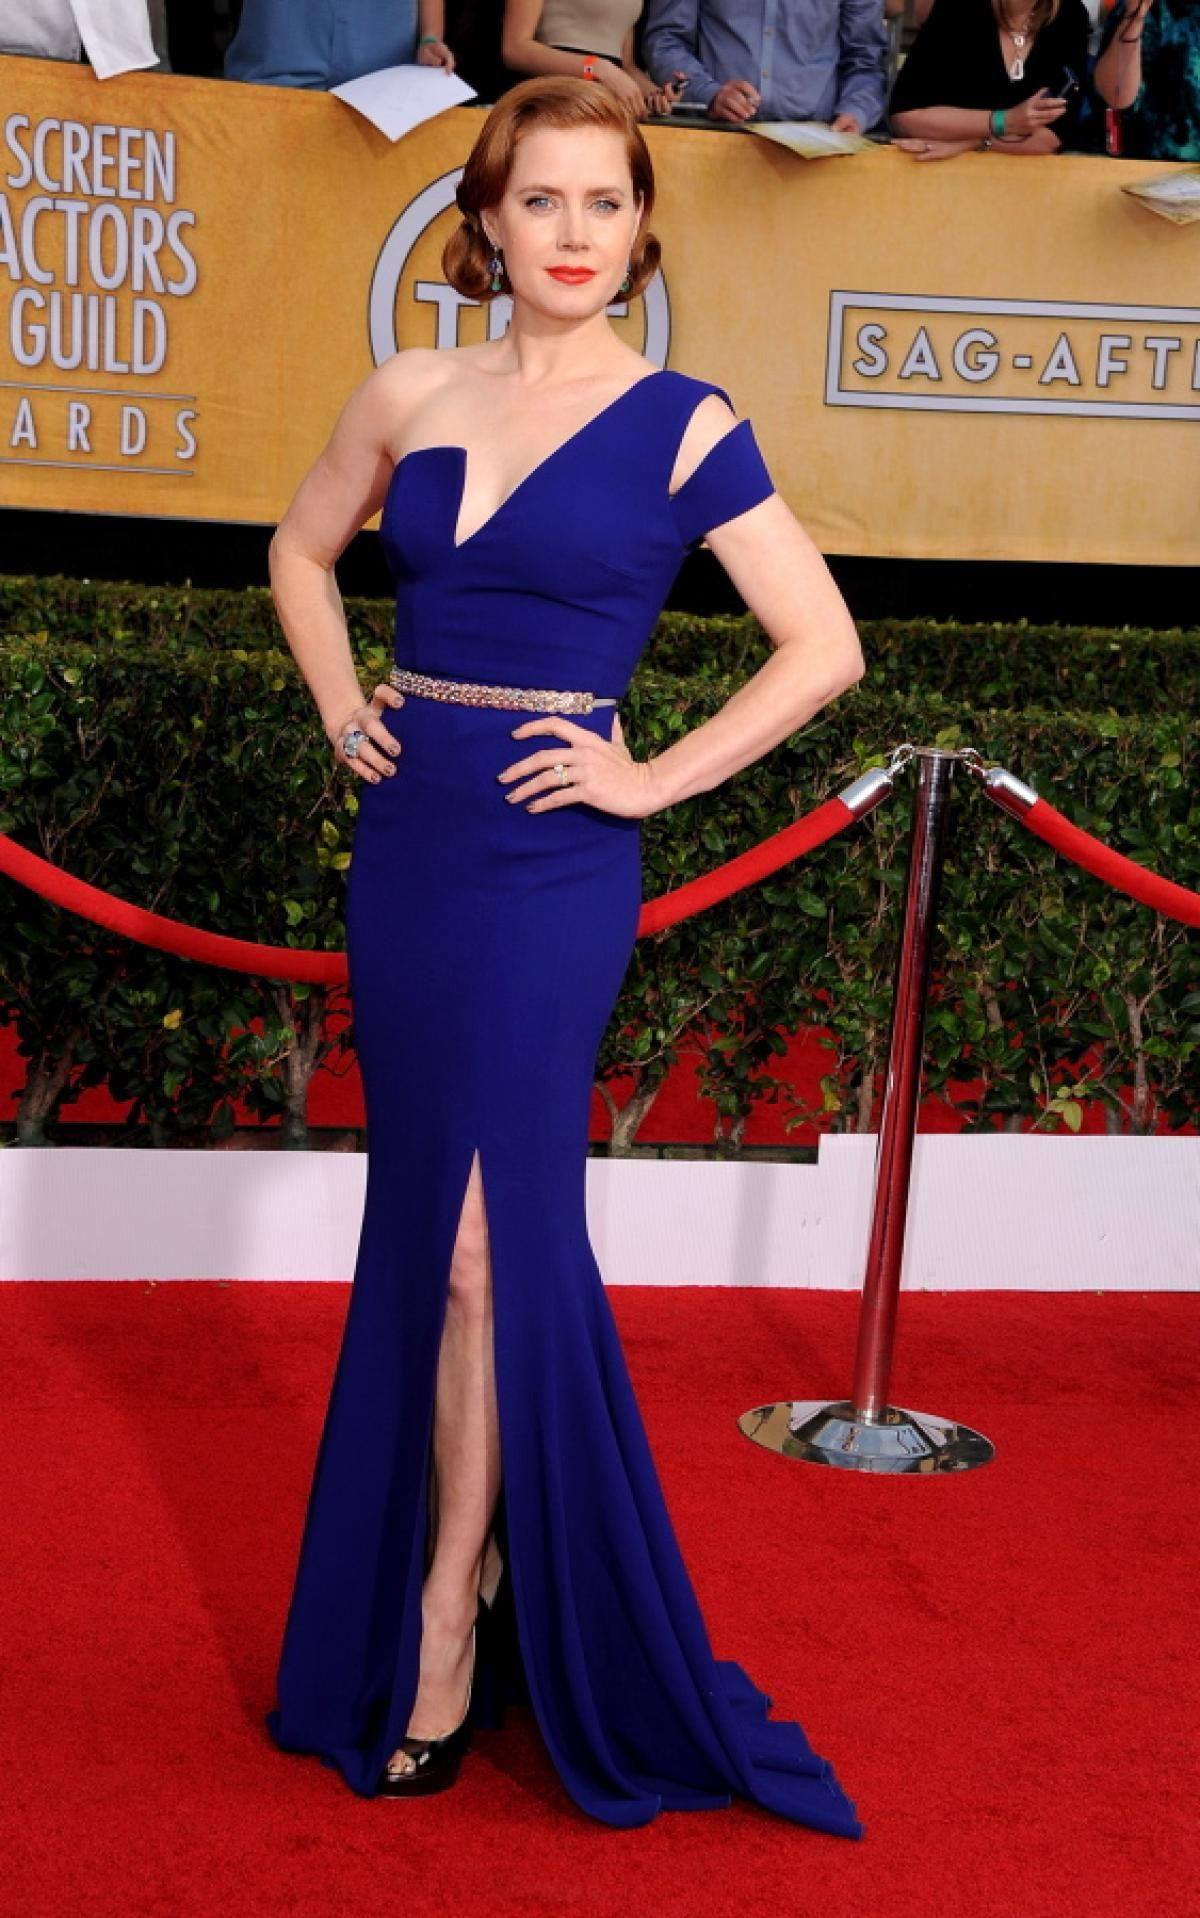 The 20th Annual Screen Actors Guild Awards